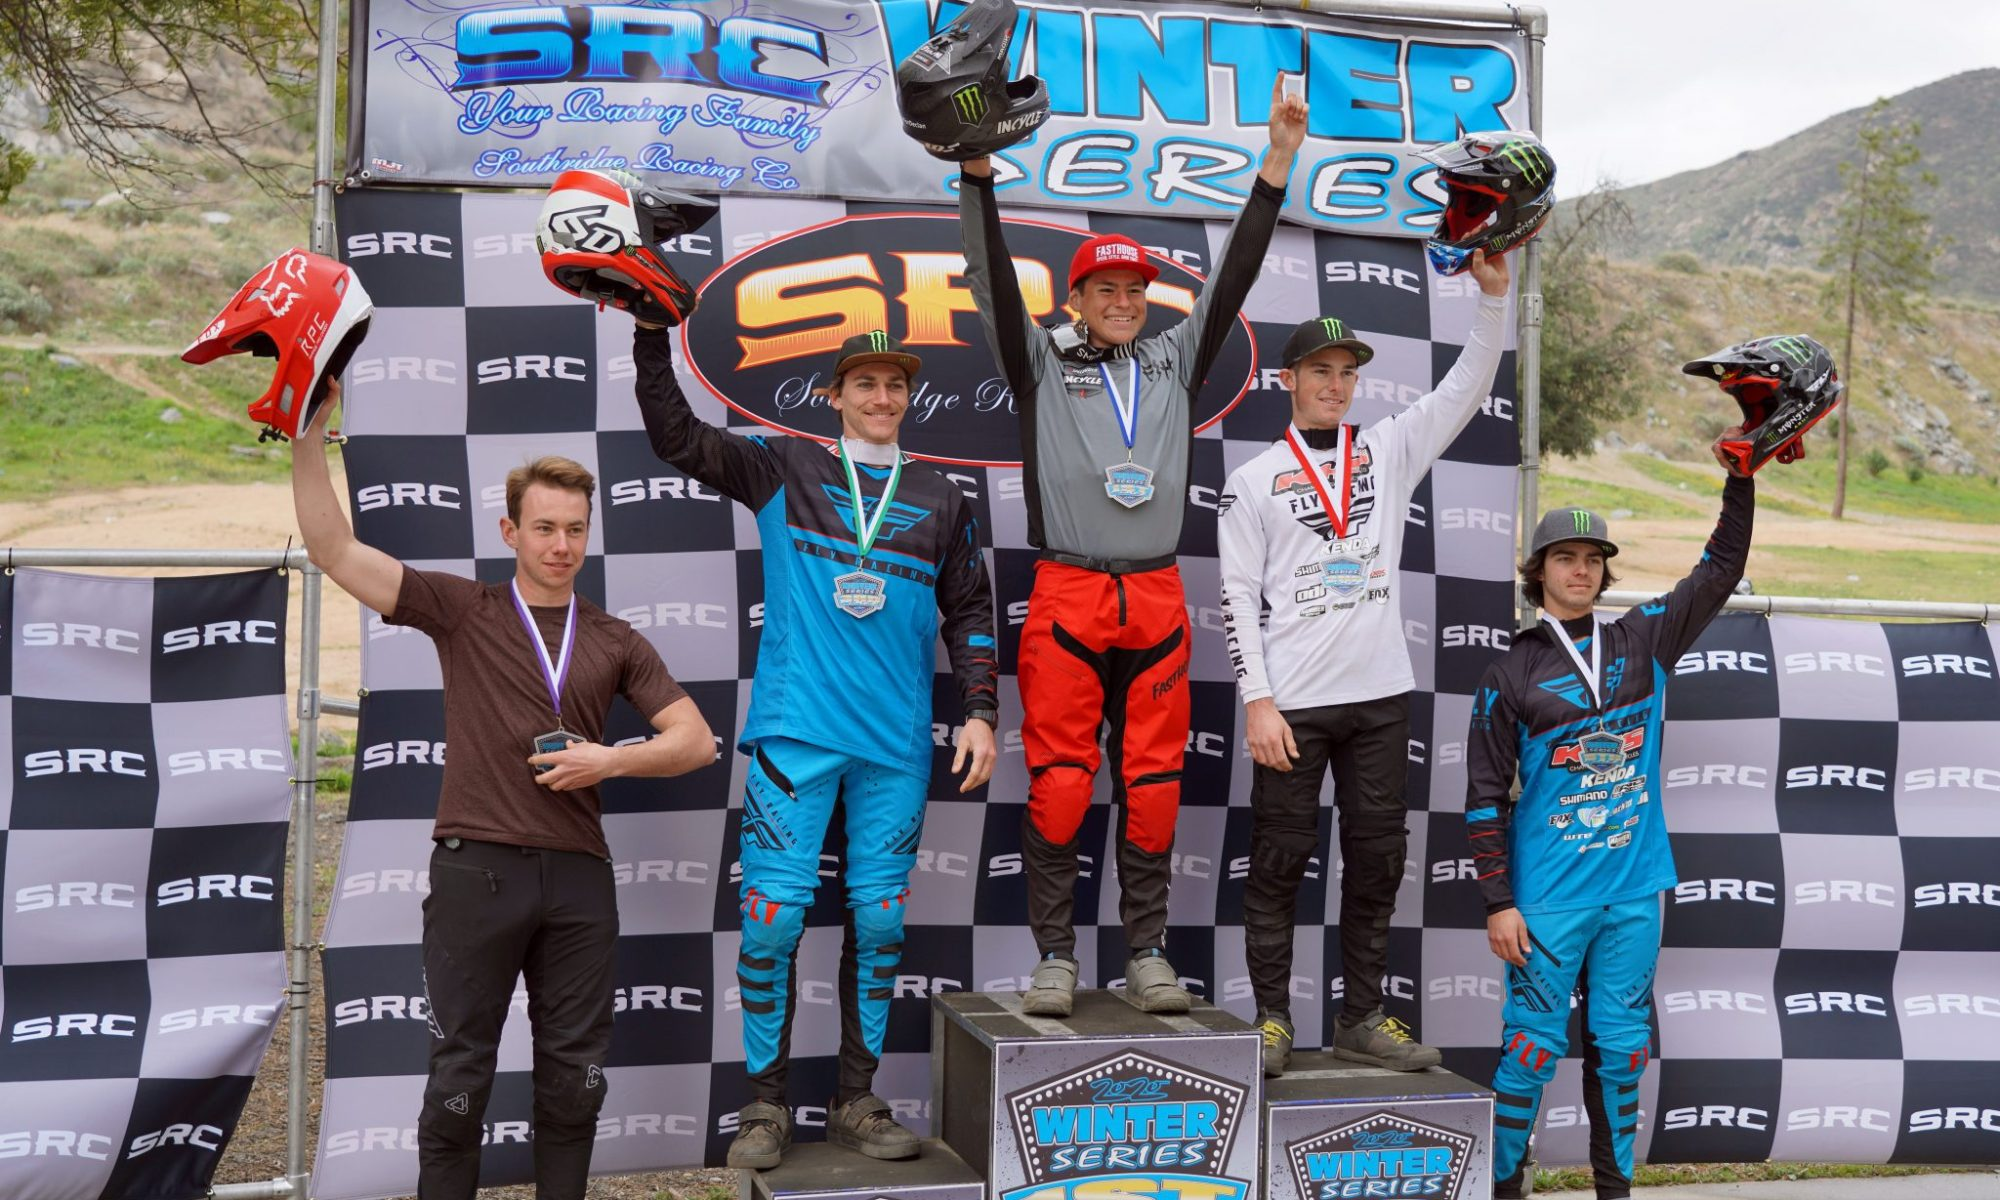 KHS pro mtb team riders Nik Nestoroff and Steven Walton on the podium in Fontana racing at the Southridge winter Series.